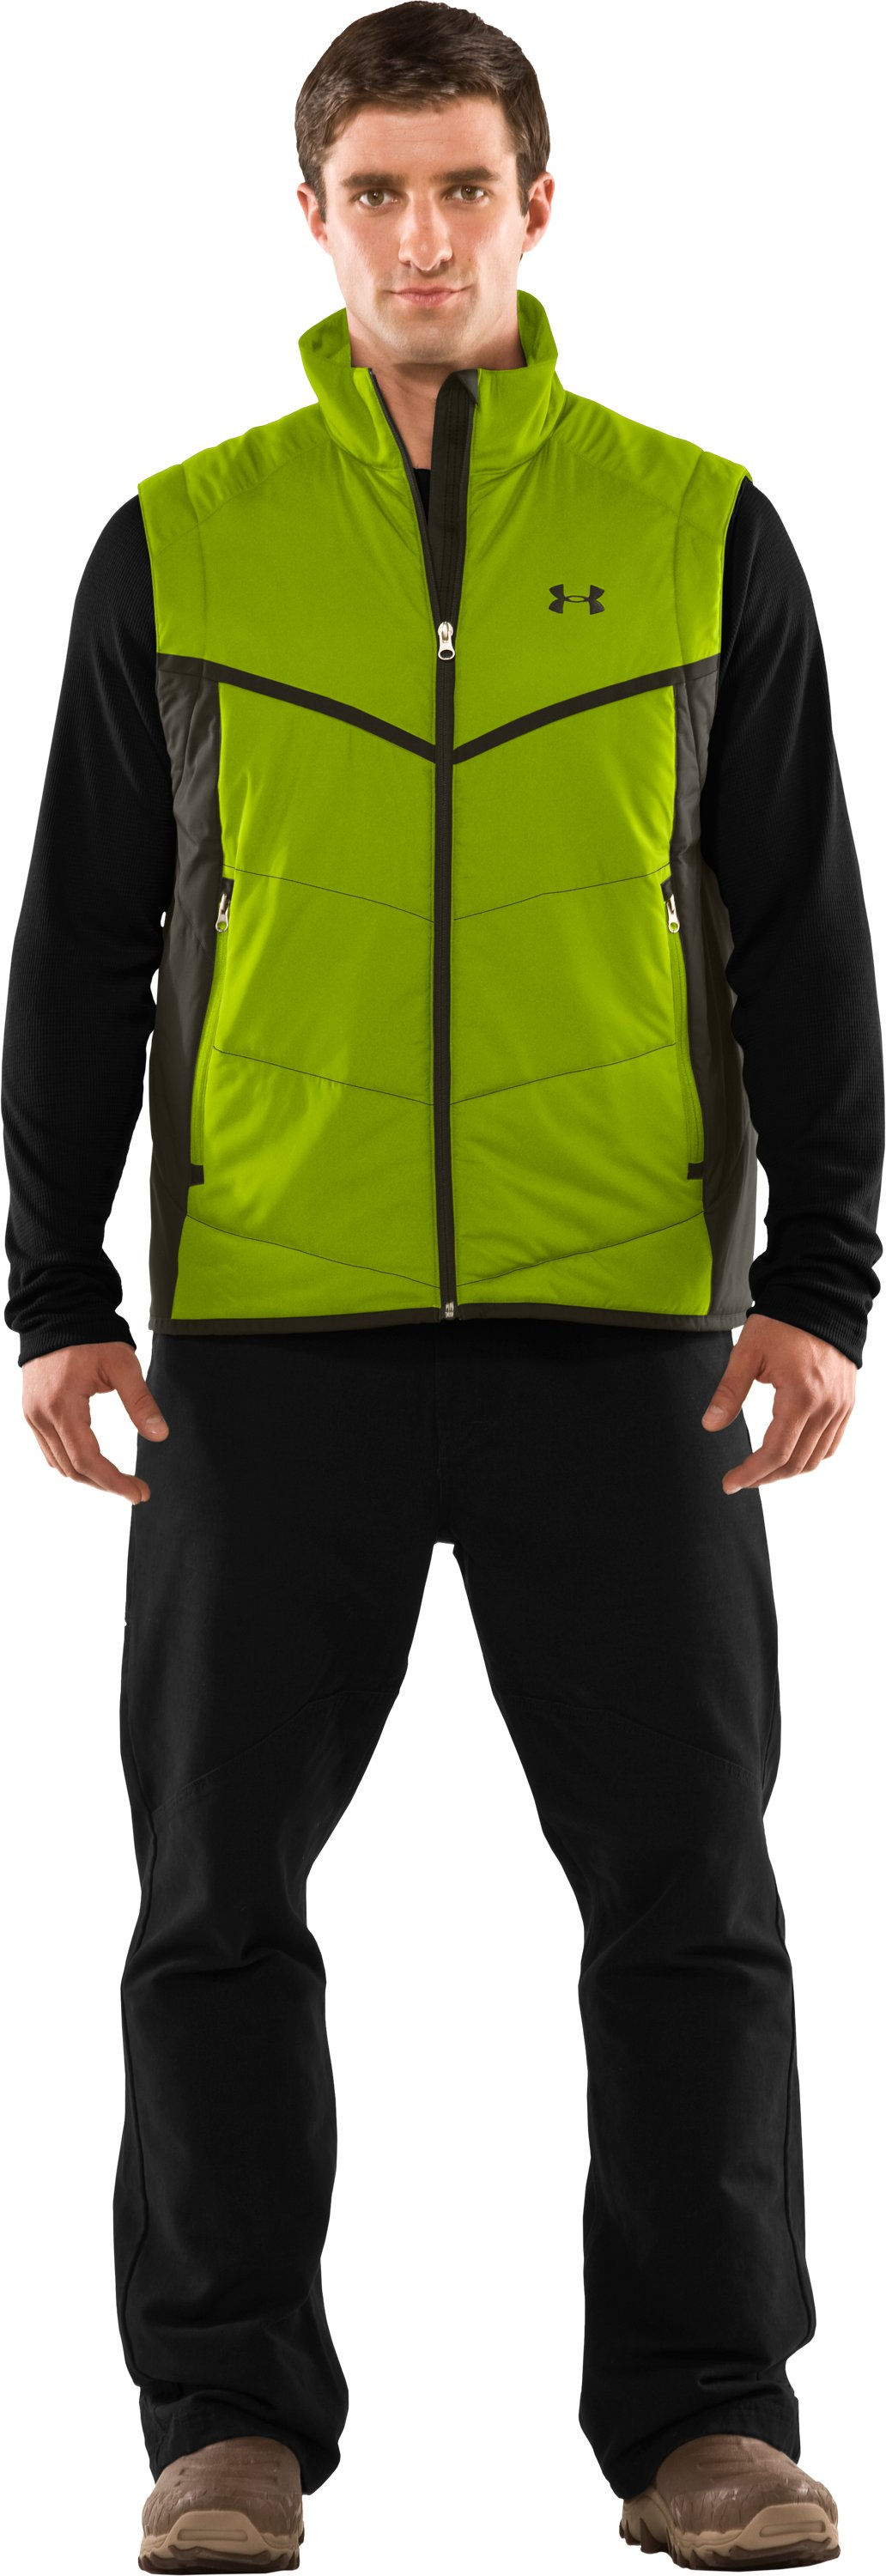 Men's ArmourLoft® Mountain Vest, Velocity, Front